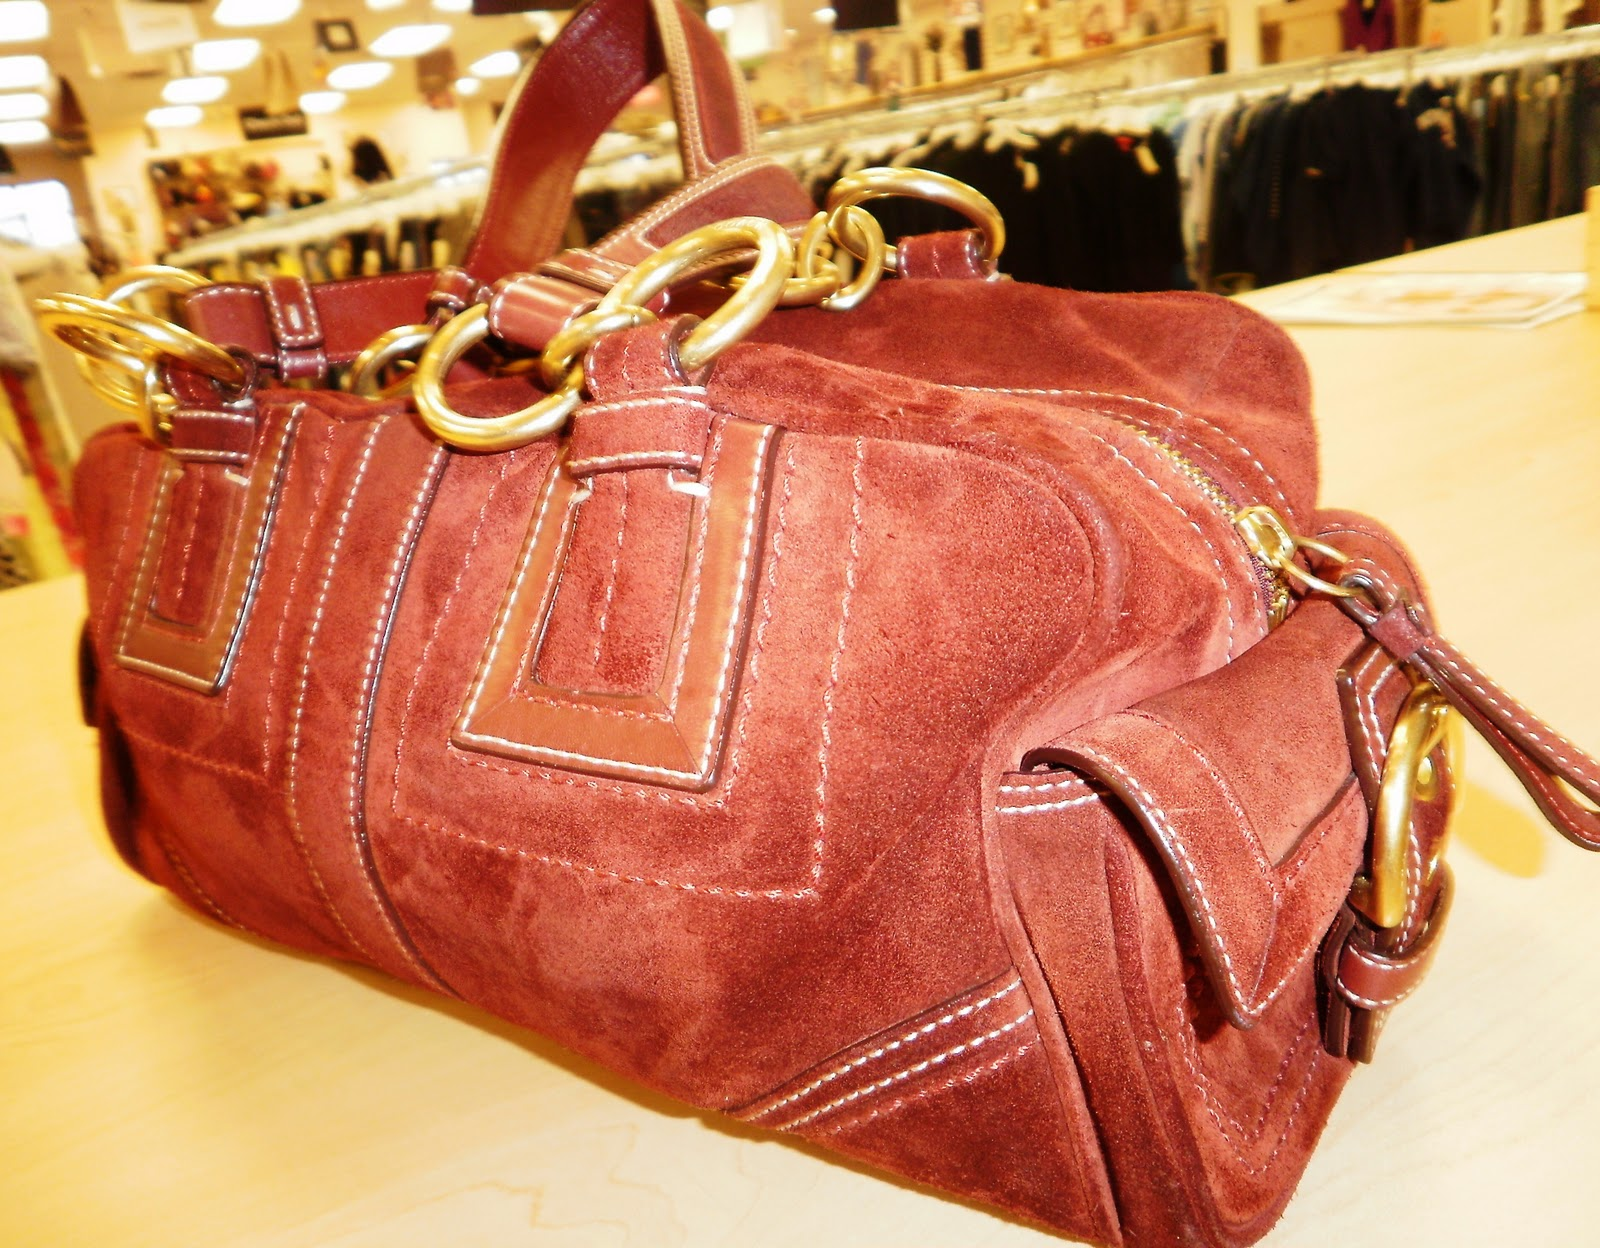 Uptown Consignment Hot New Handbags In Southington